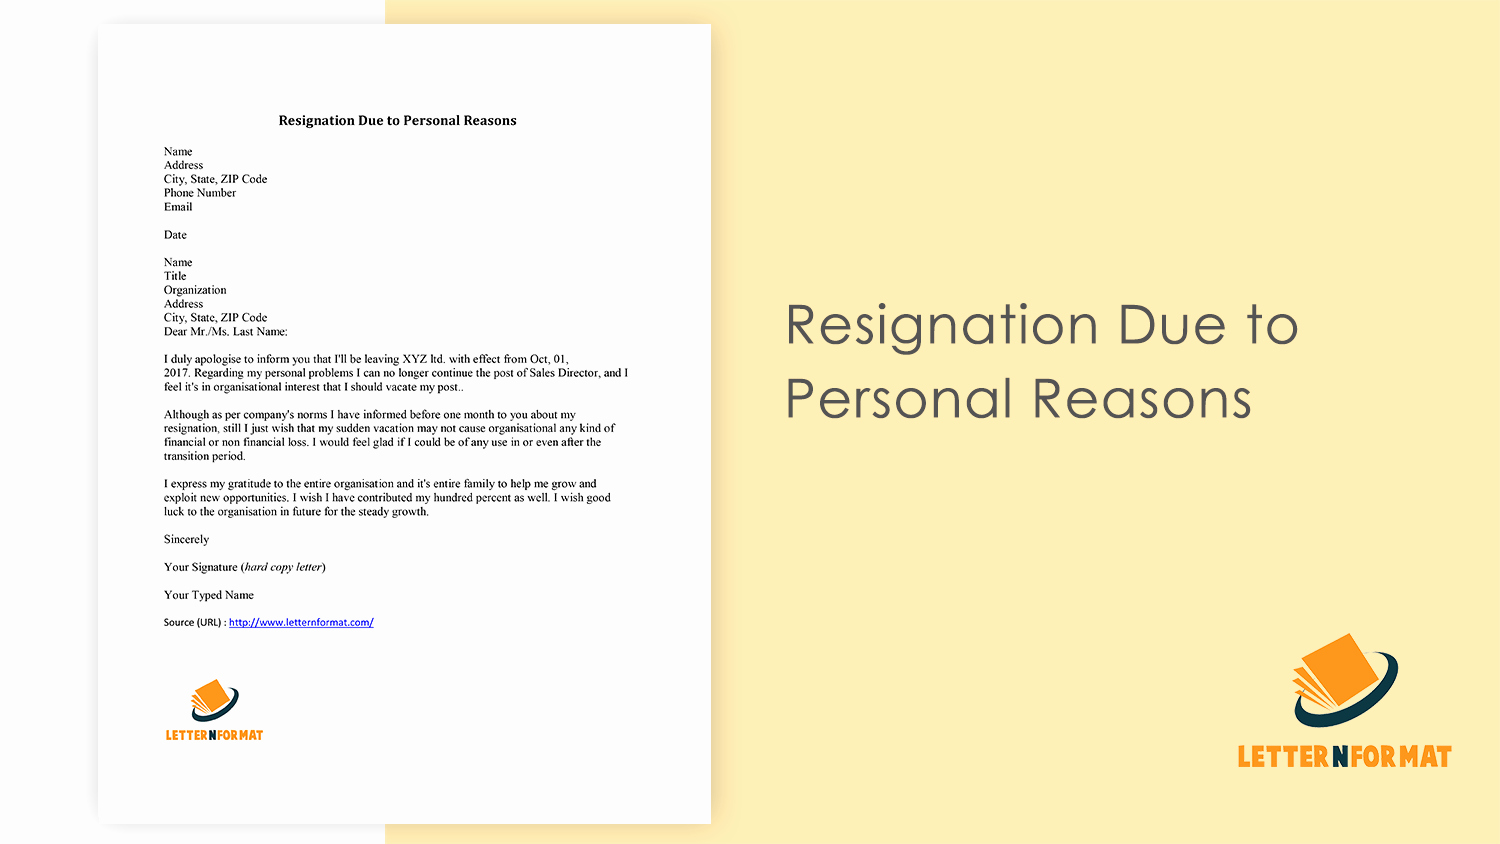 Resignation Letter for Personal Reasons Unique Resignation Letter format for Personal Reasons Download Pdf